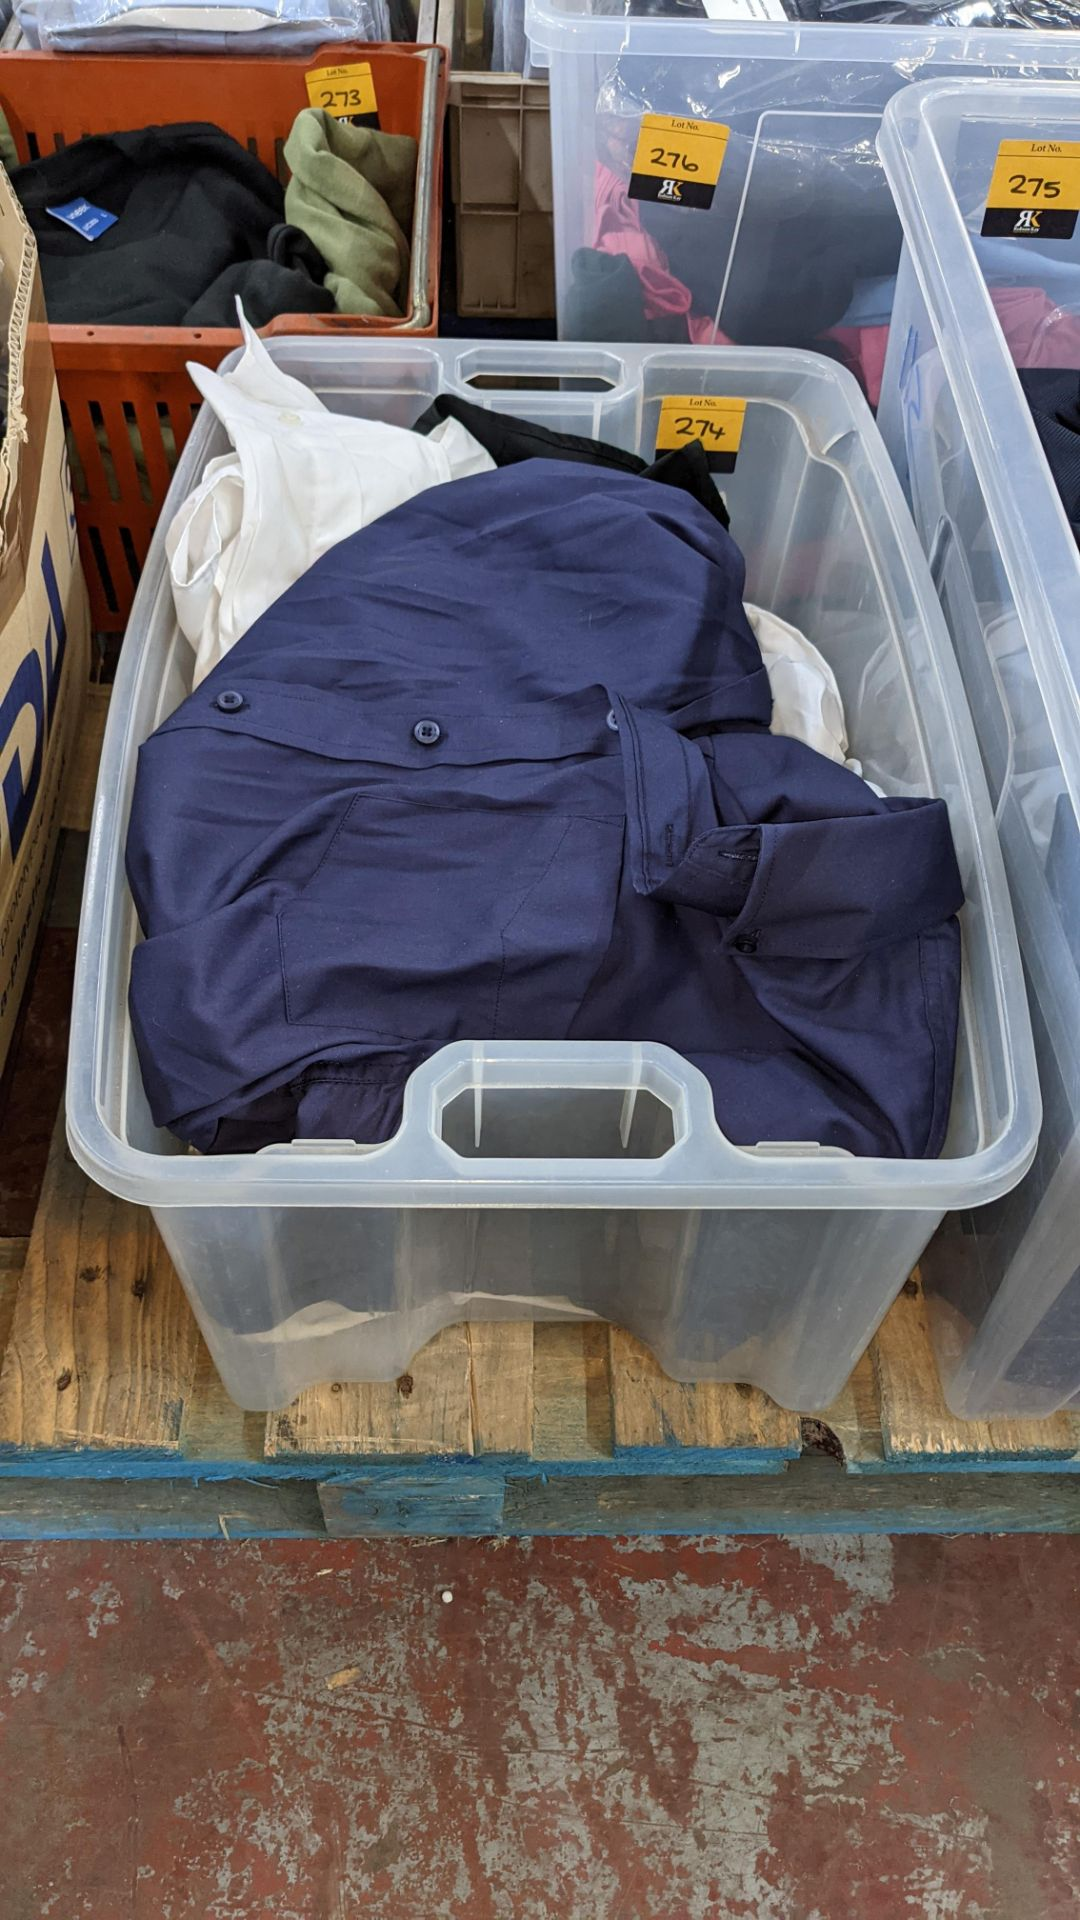 The contents of a crate of shirts. NB crate excluded